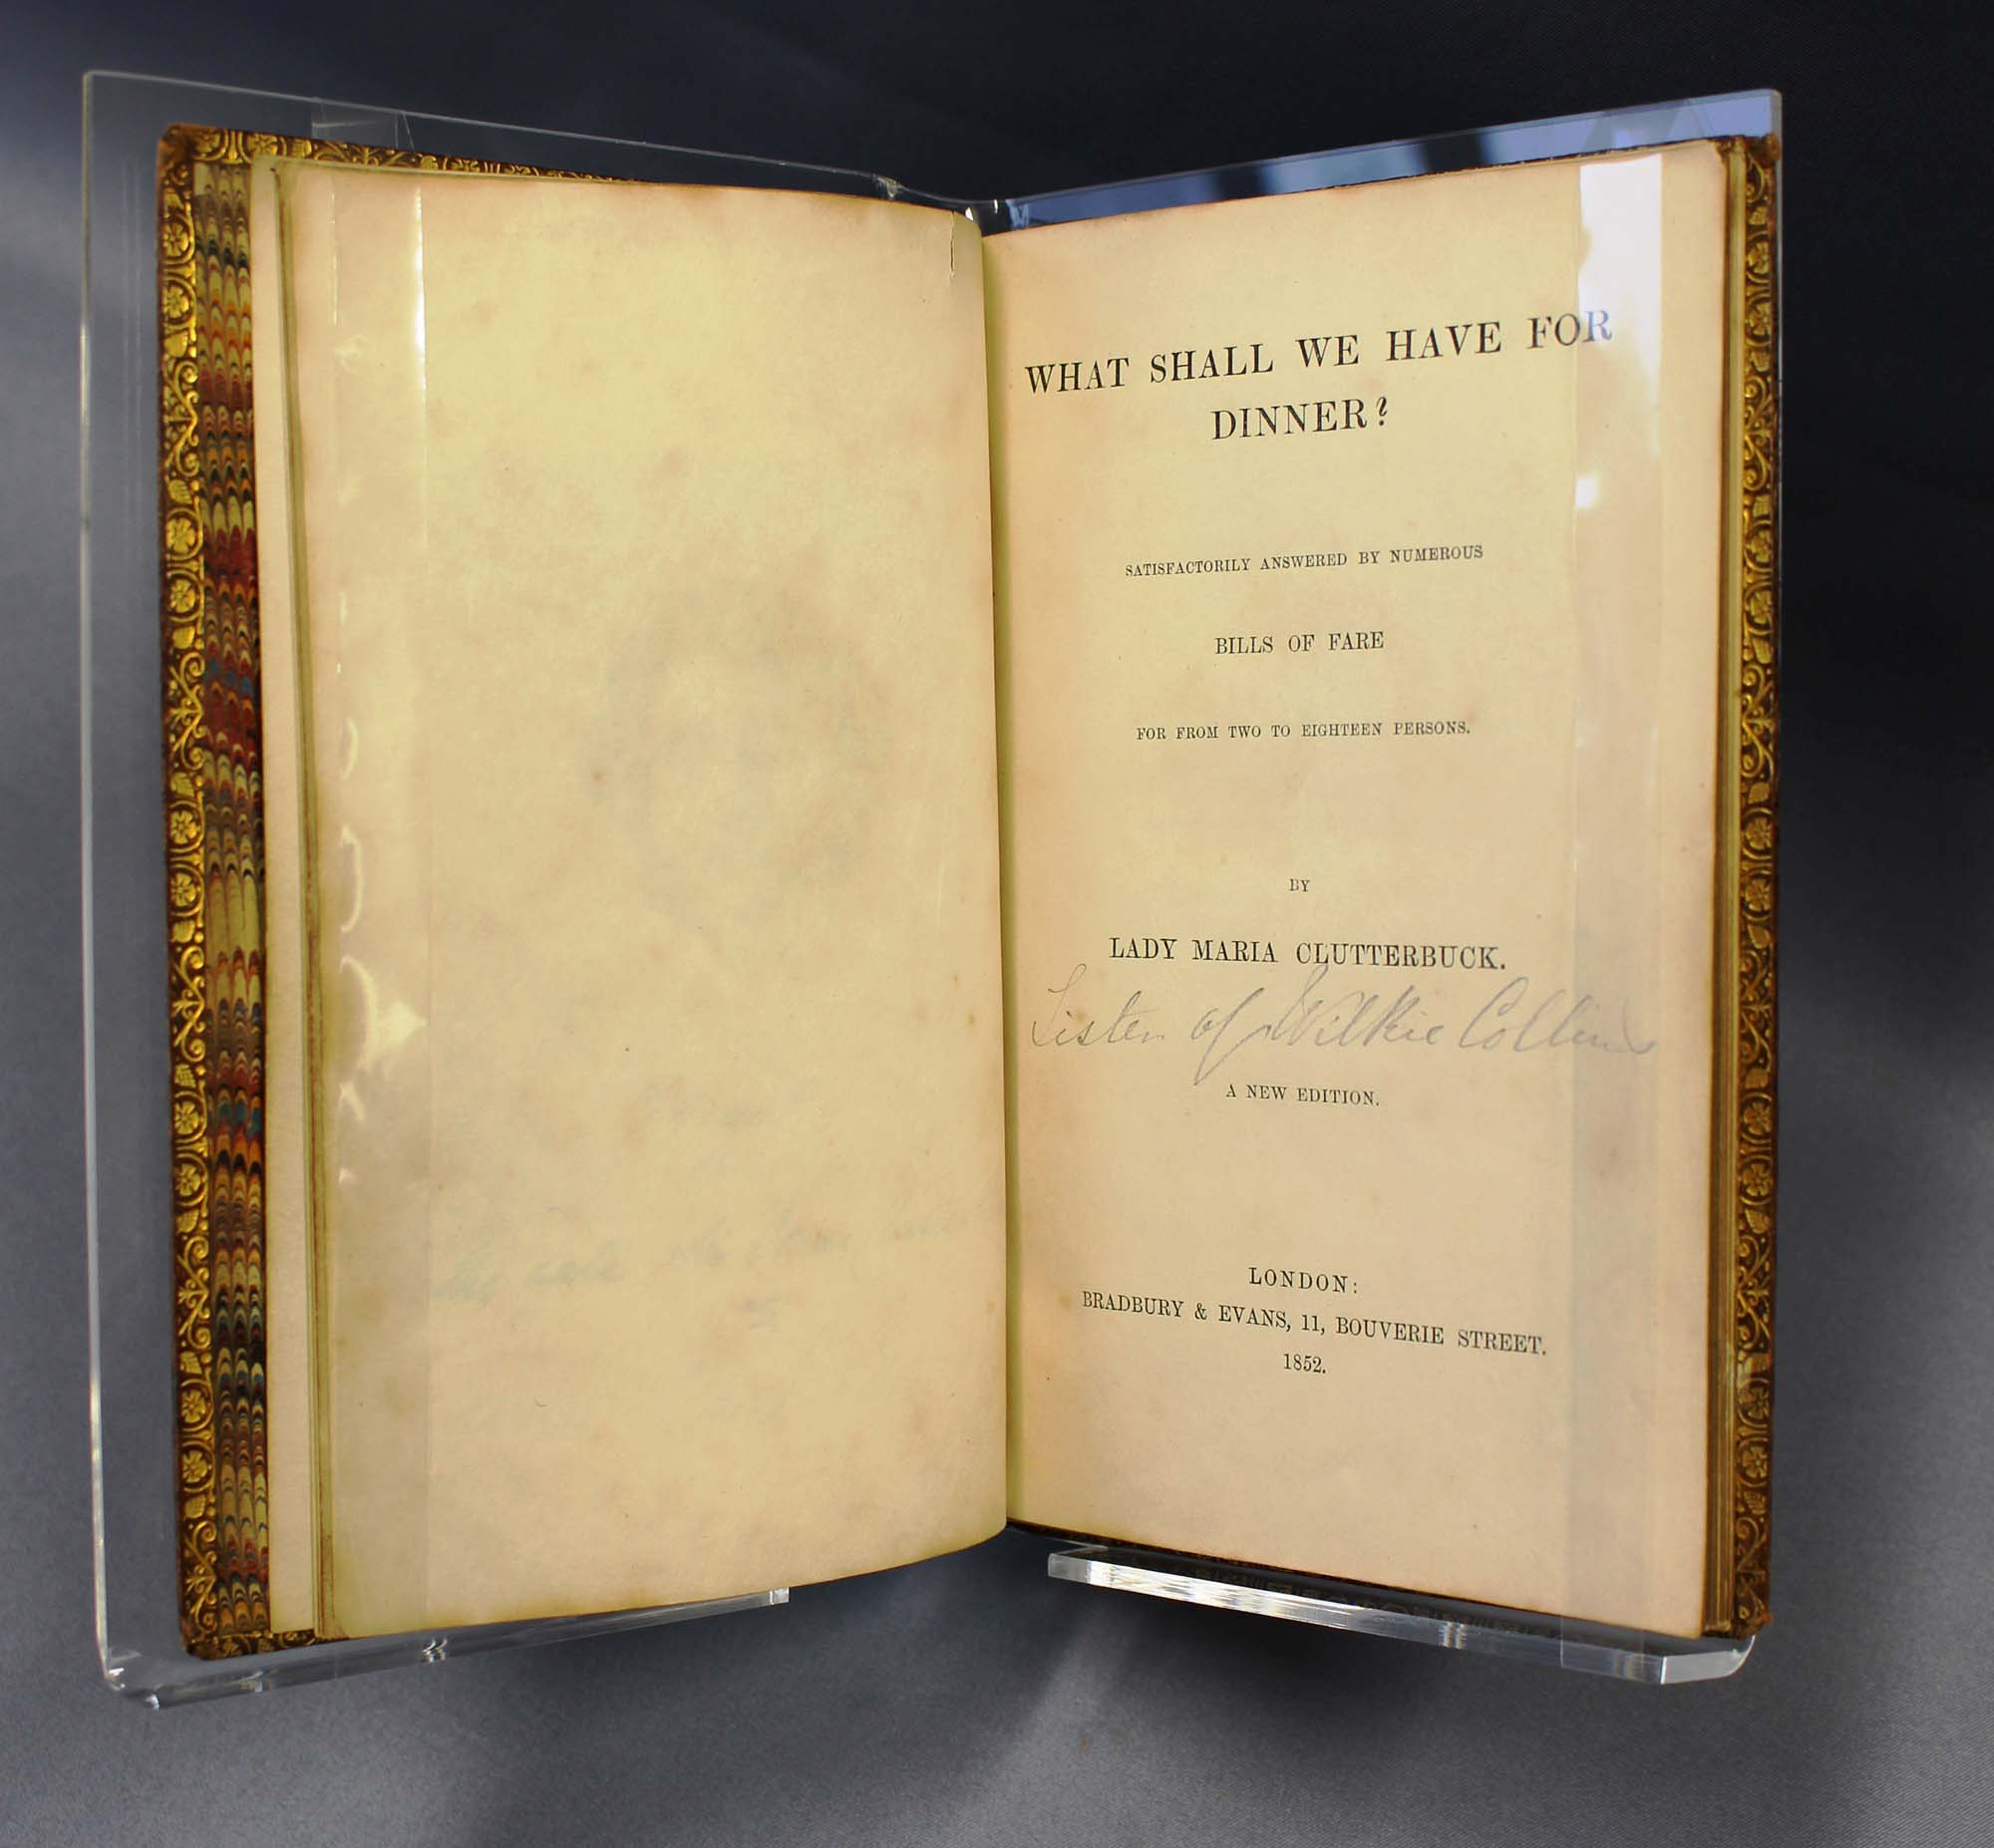 a photo of an open book at the frontispiece page